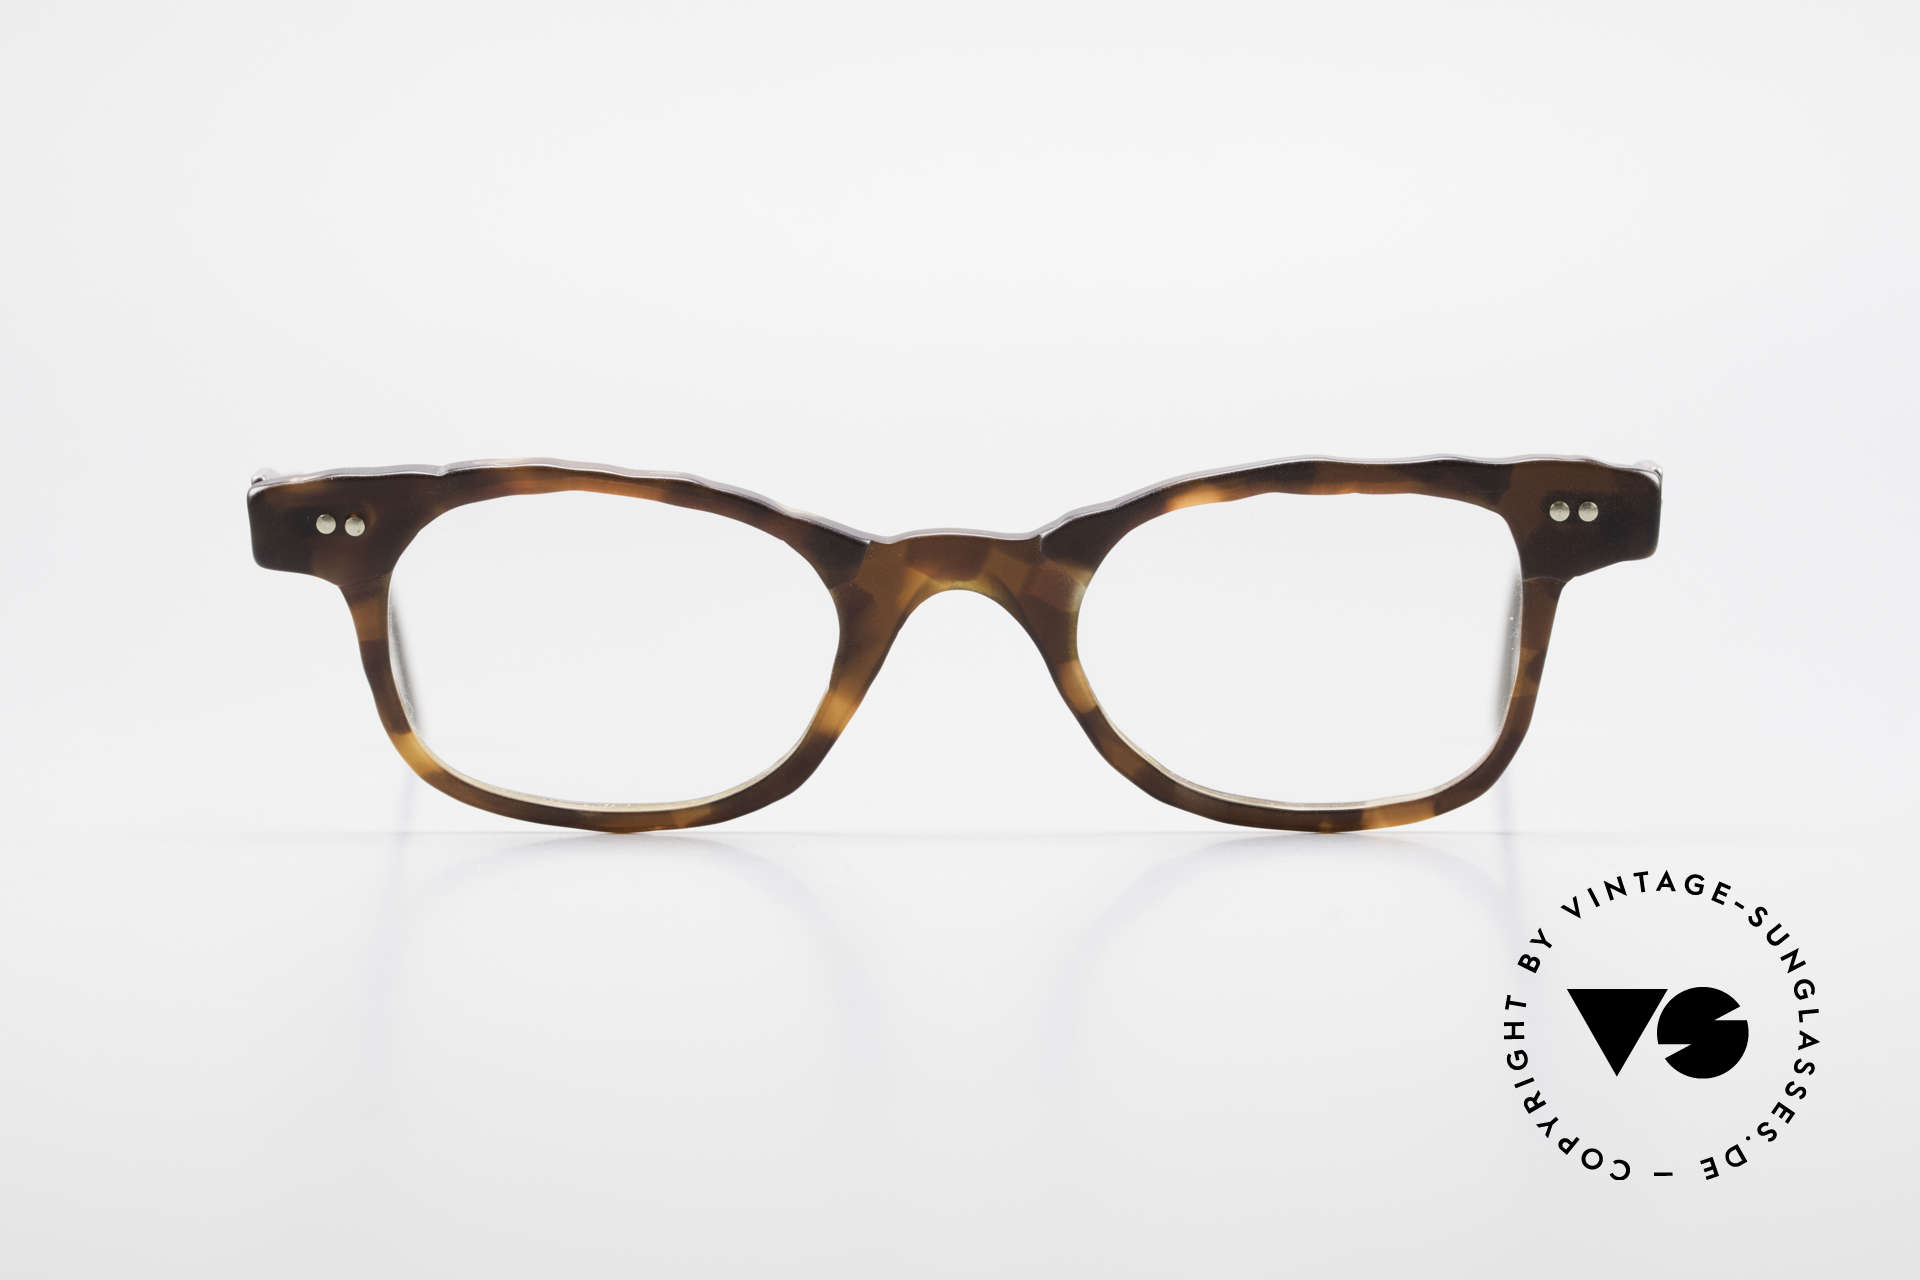 Theo Belgium Eye-Witness Avant-Garde Titanium Glasses, founded in 1989 as 'opposite pole' to the 'mainstream', Made for Men and Women